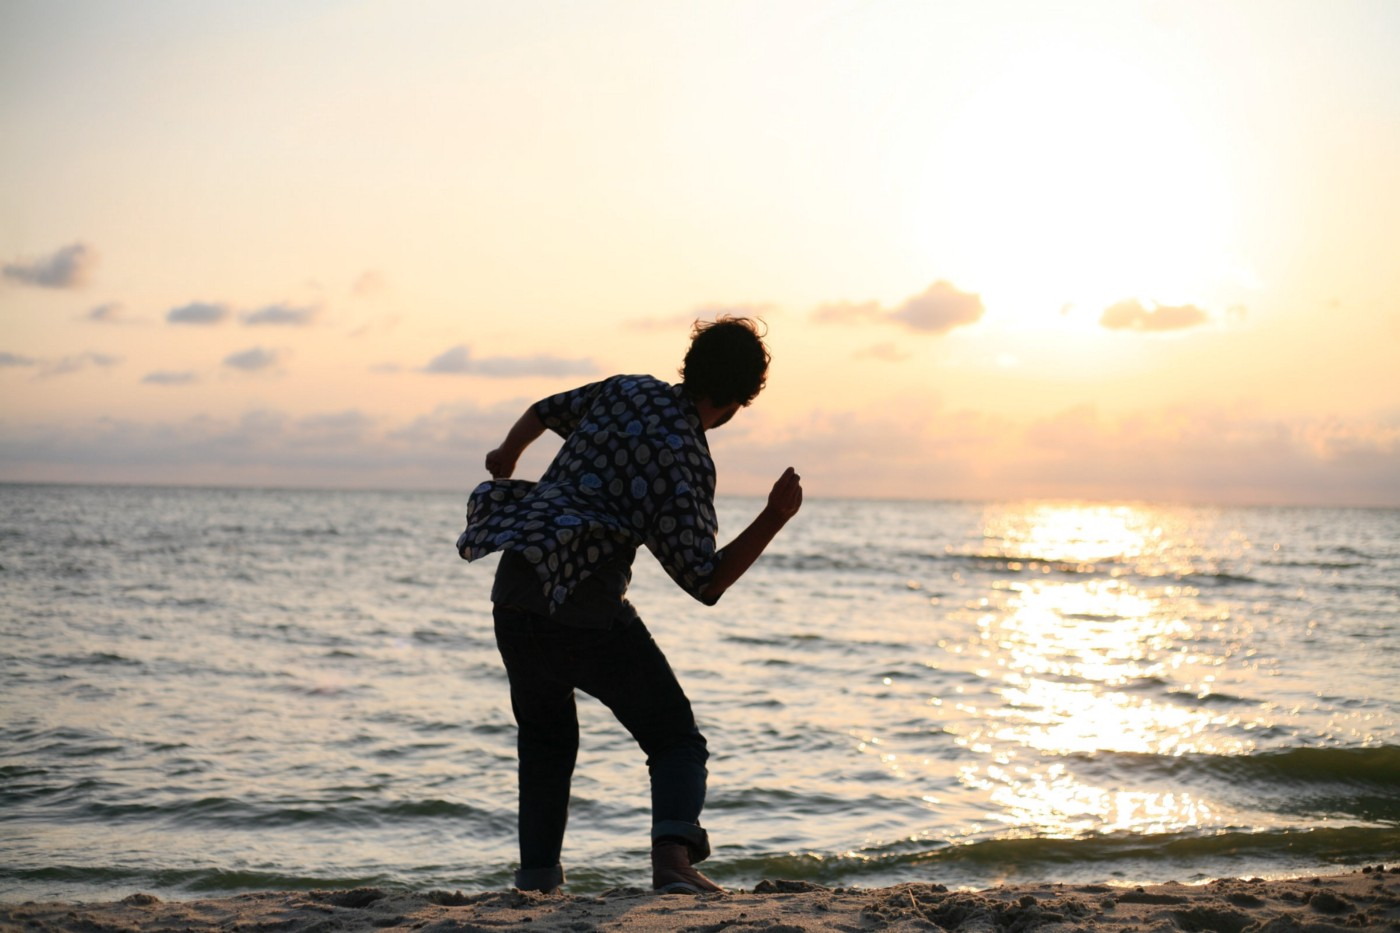 A young child skimming stones at the beach